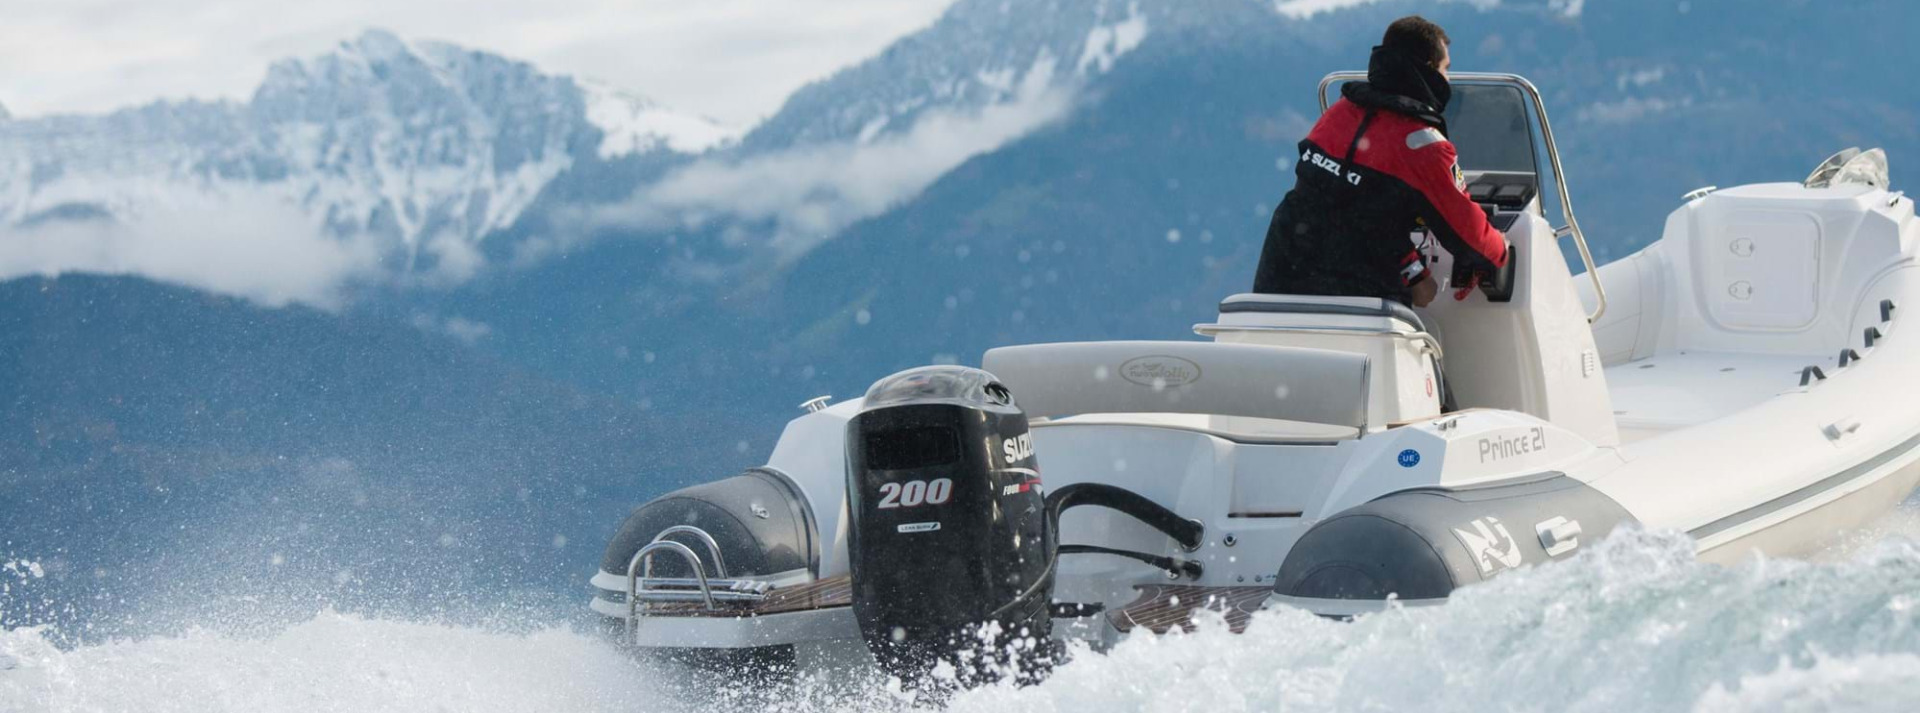 Suzuki Marine Outboard DF300AP LONG TERM VALUE from Winsor Marine